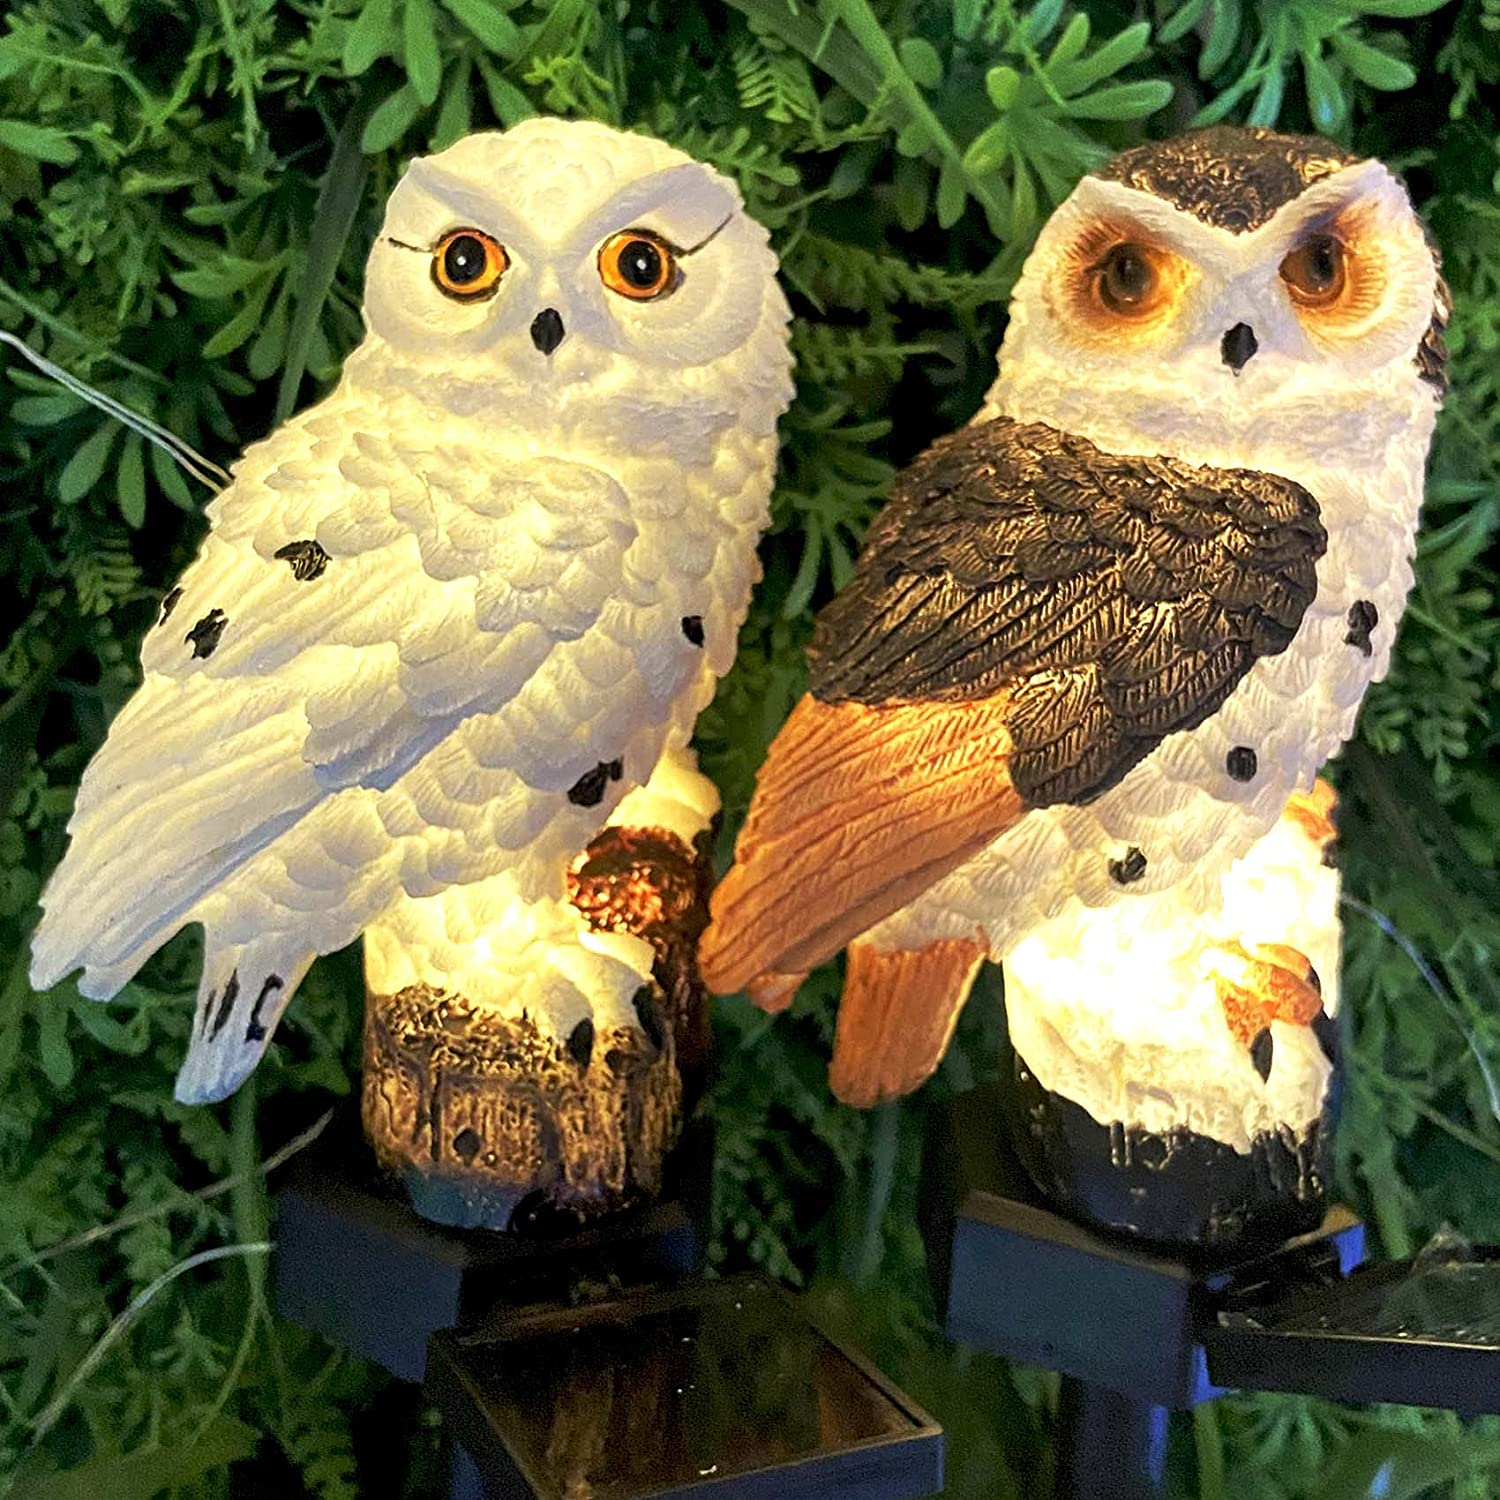 2 Pack Garden Solar Lights Outdoor Decorative Resin Owl Solar LED Lights with Stake for Garden Lawn Pathway Yard - 1 Brown 1 White